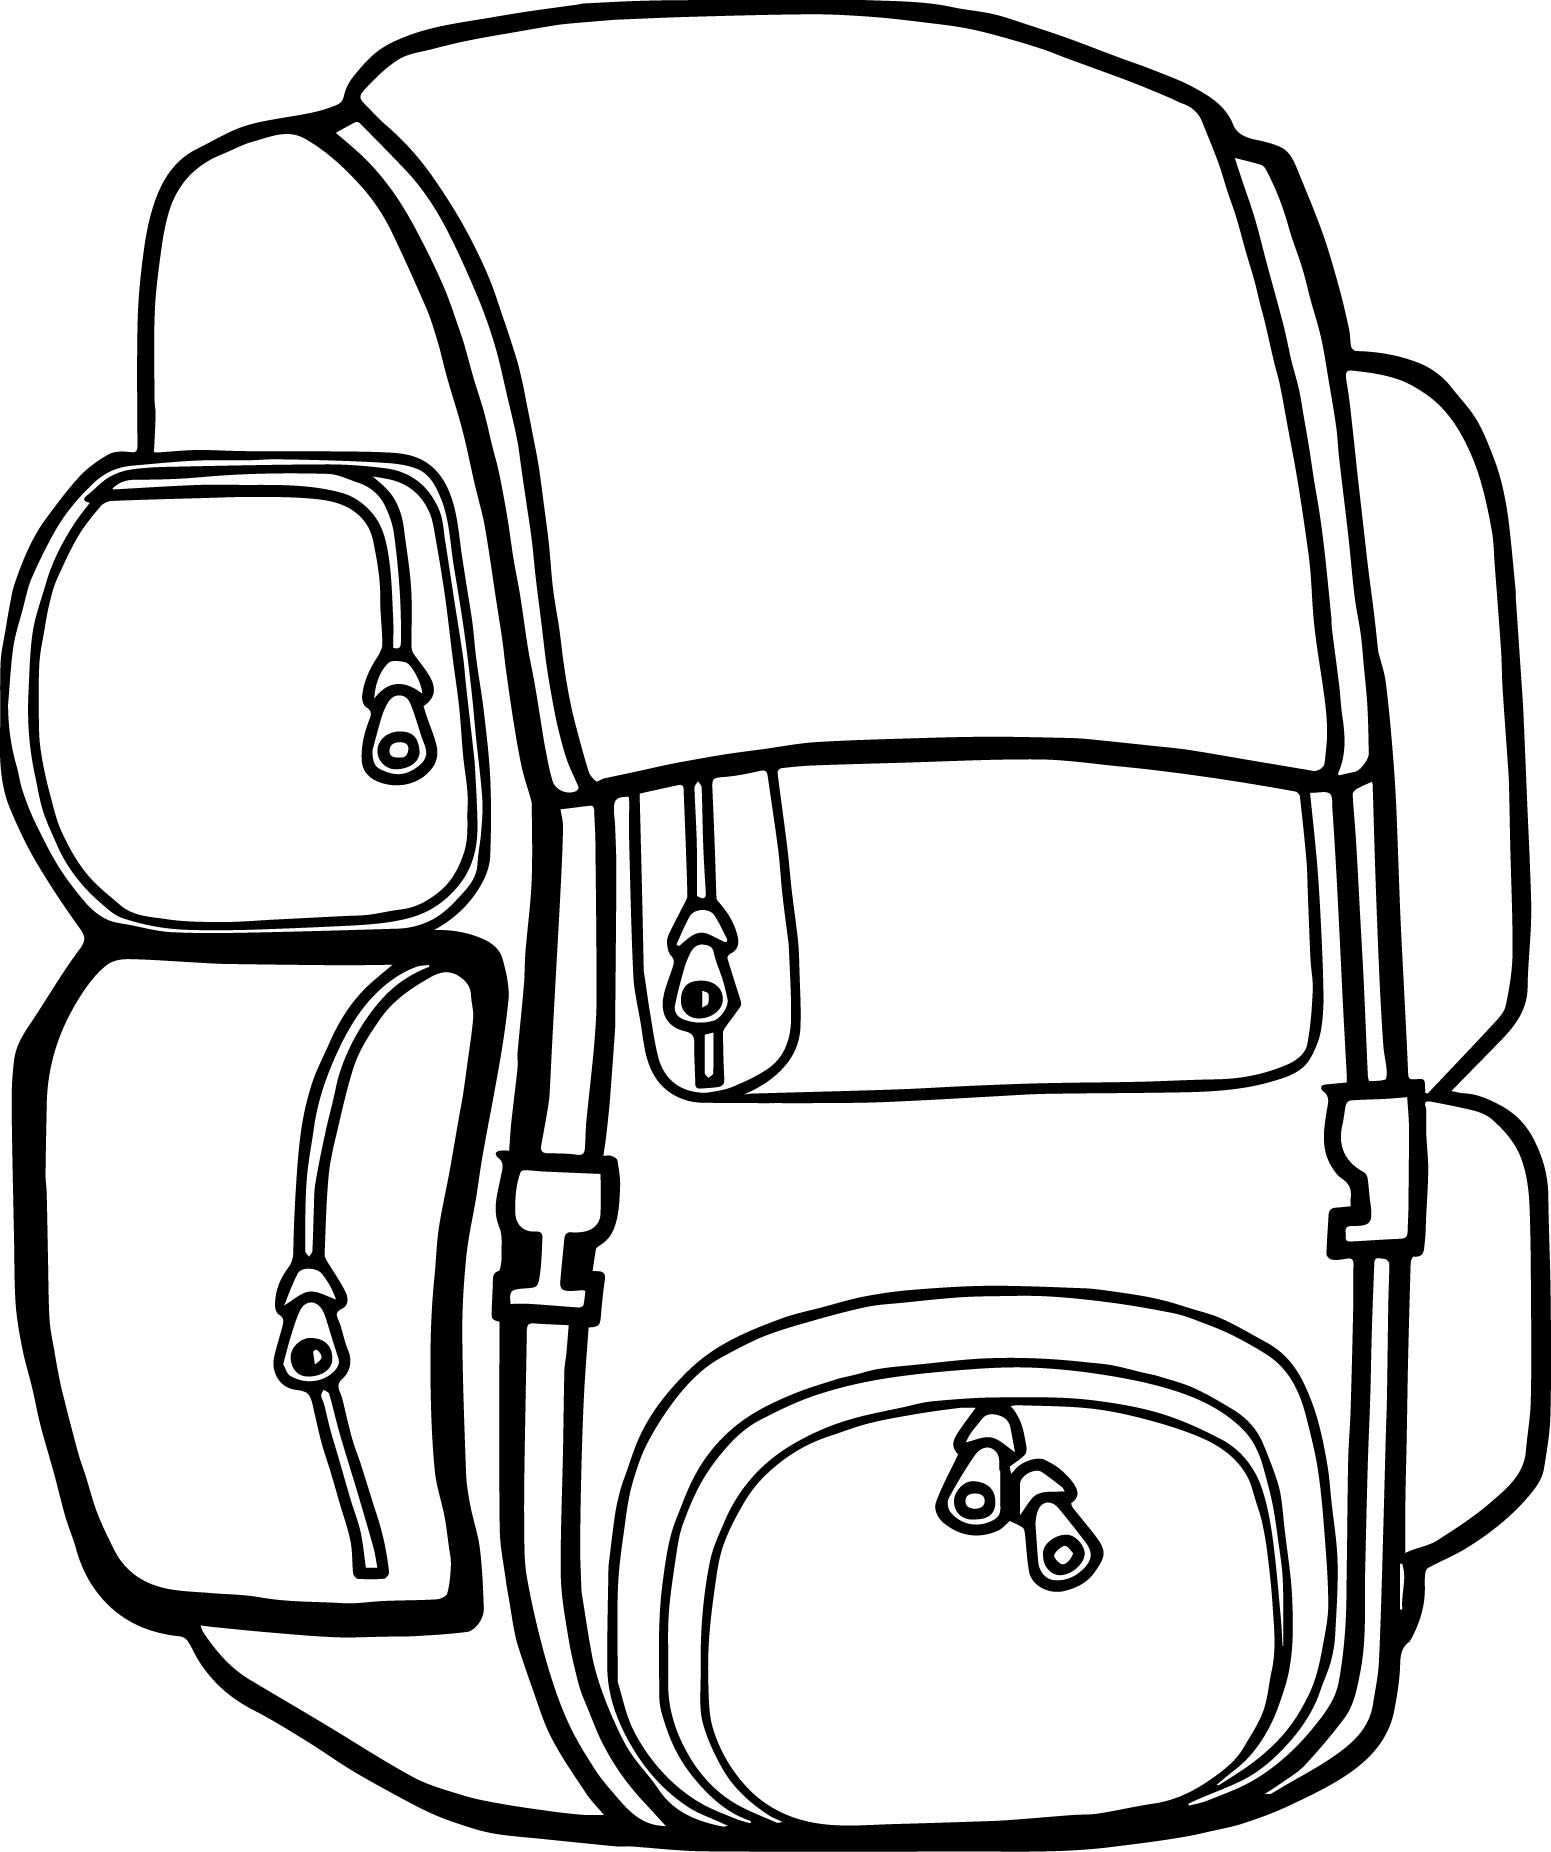 1551x1852 Coloring Pages Kids Backpack Free Images Camp Camping Coloring